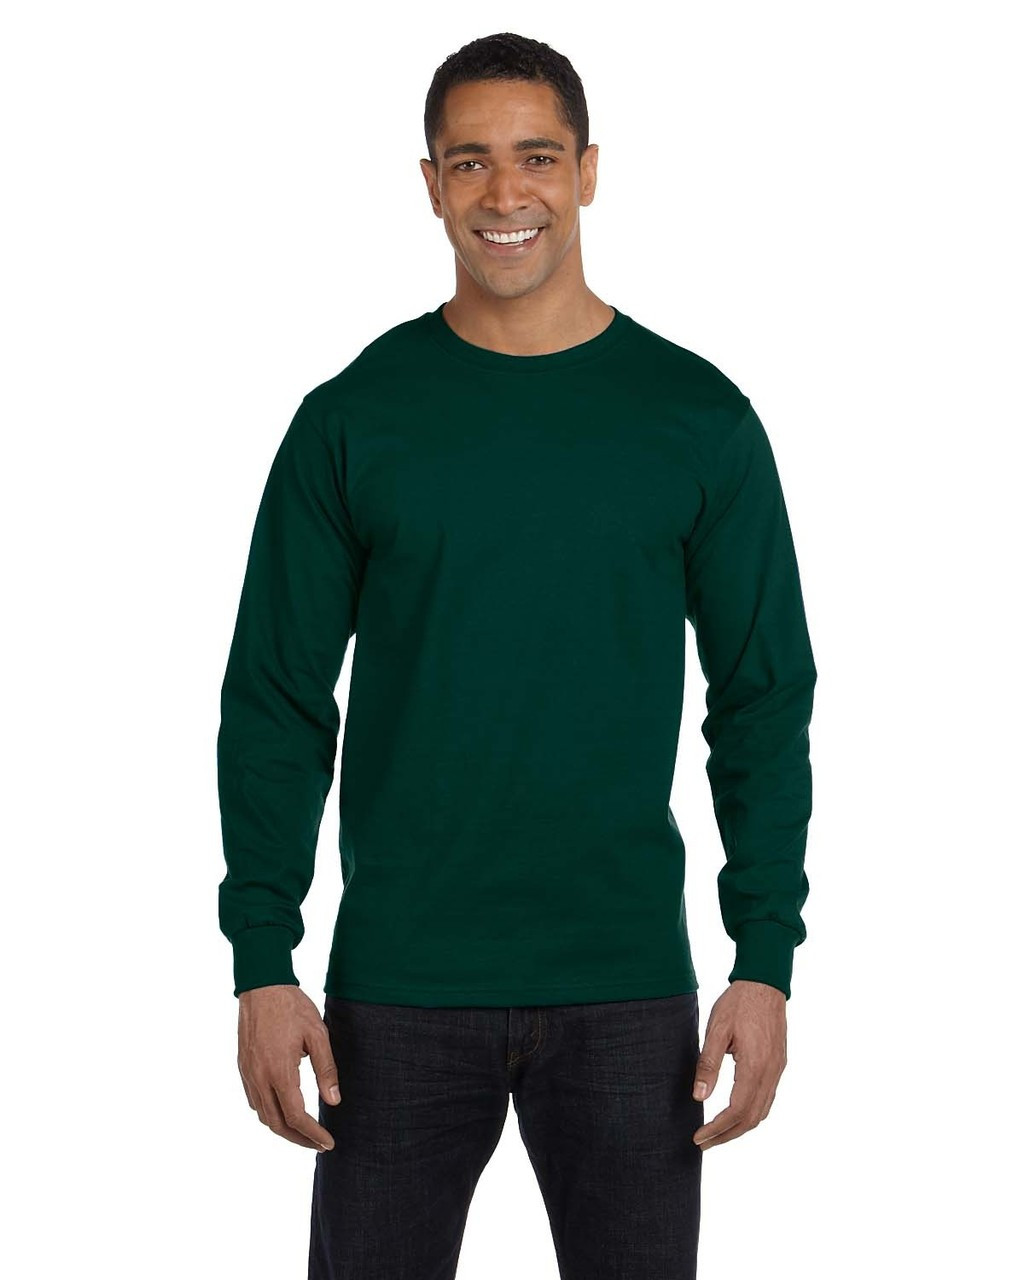 Forest Green - G840 Gildan DryBlend 50/50 Long Sleeve T-Shirt | Blankclothing.ca